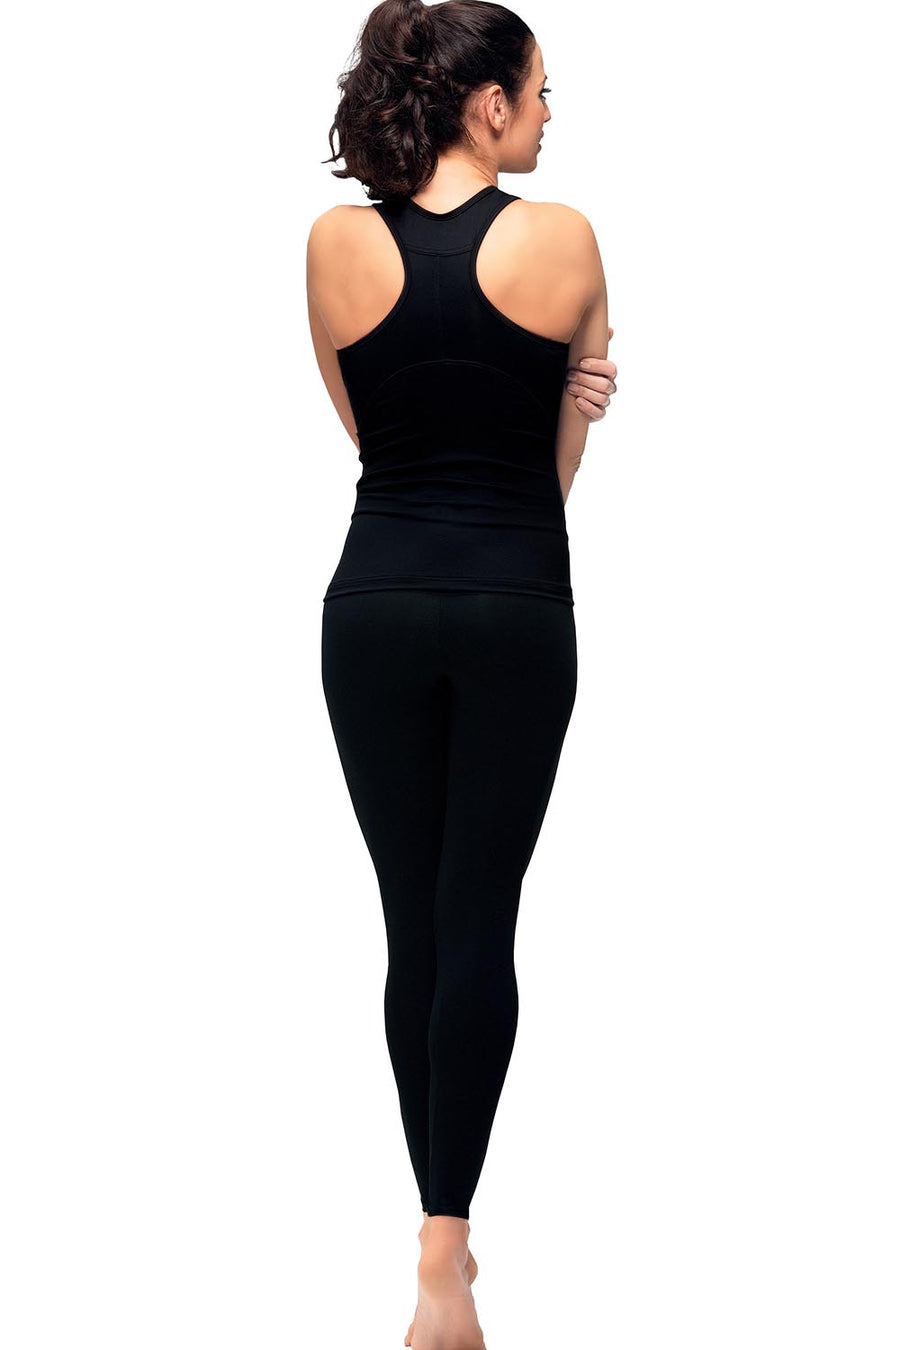 Leggins model 58589 GWINNER